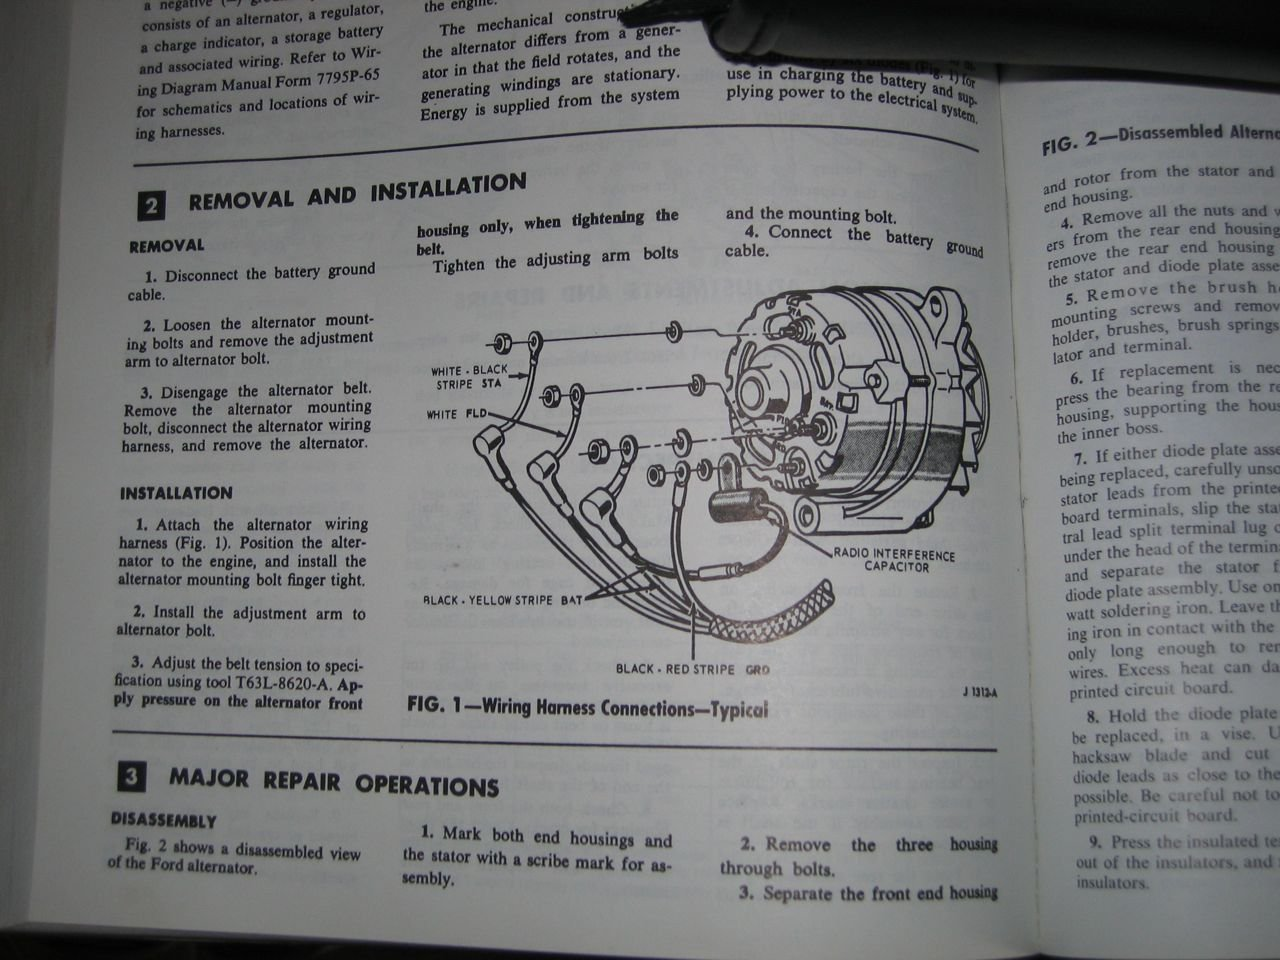 93328d1268767403 1966 mustang alternator wiring img_0749 1966 mustang alternator wiring ford mustang forum 1966 ford alternator wiring diagram at virtualis.co